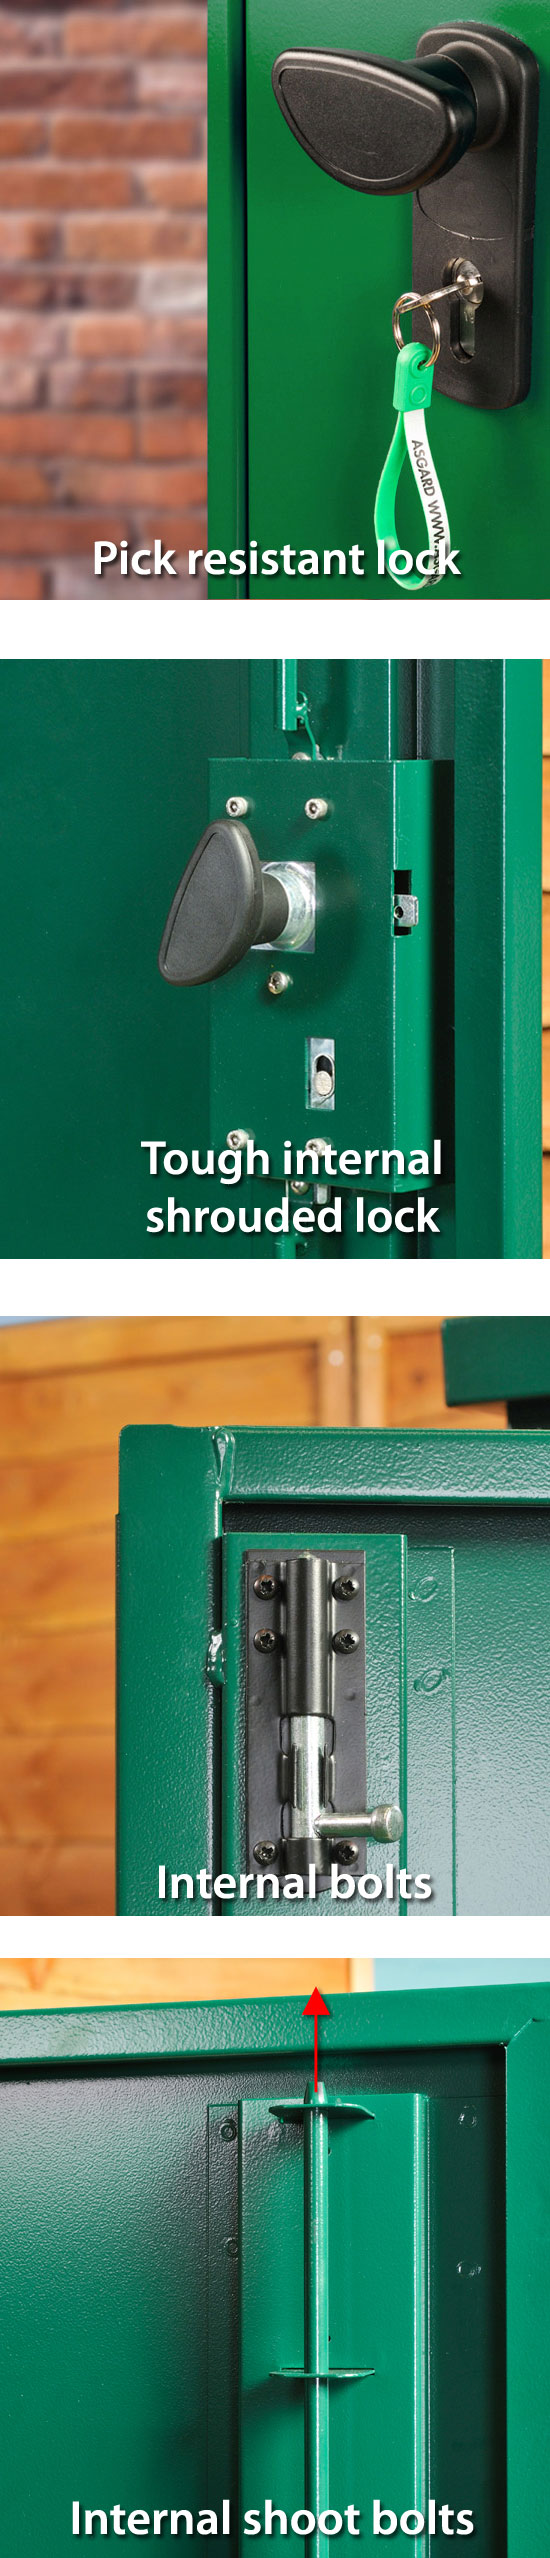 Metal Shed Locking System